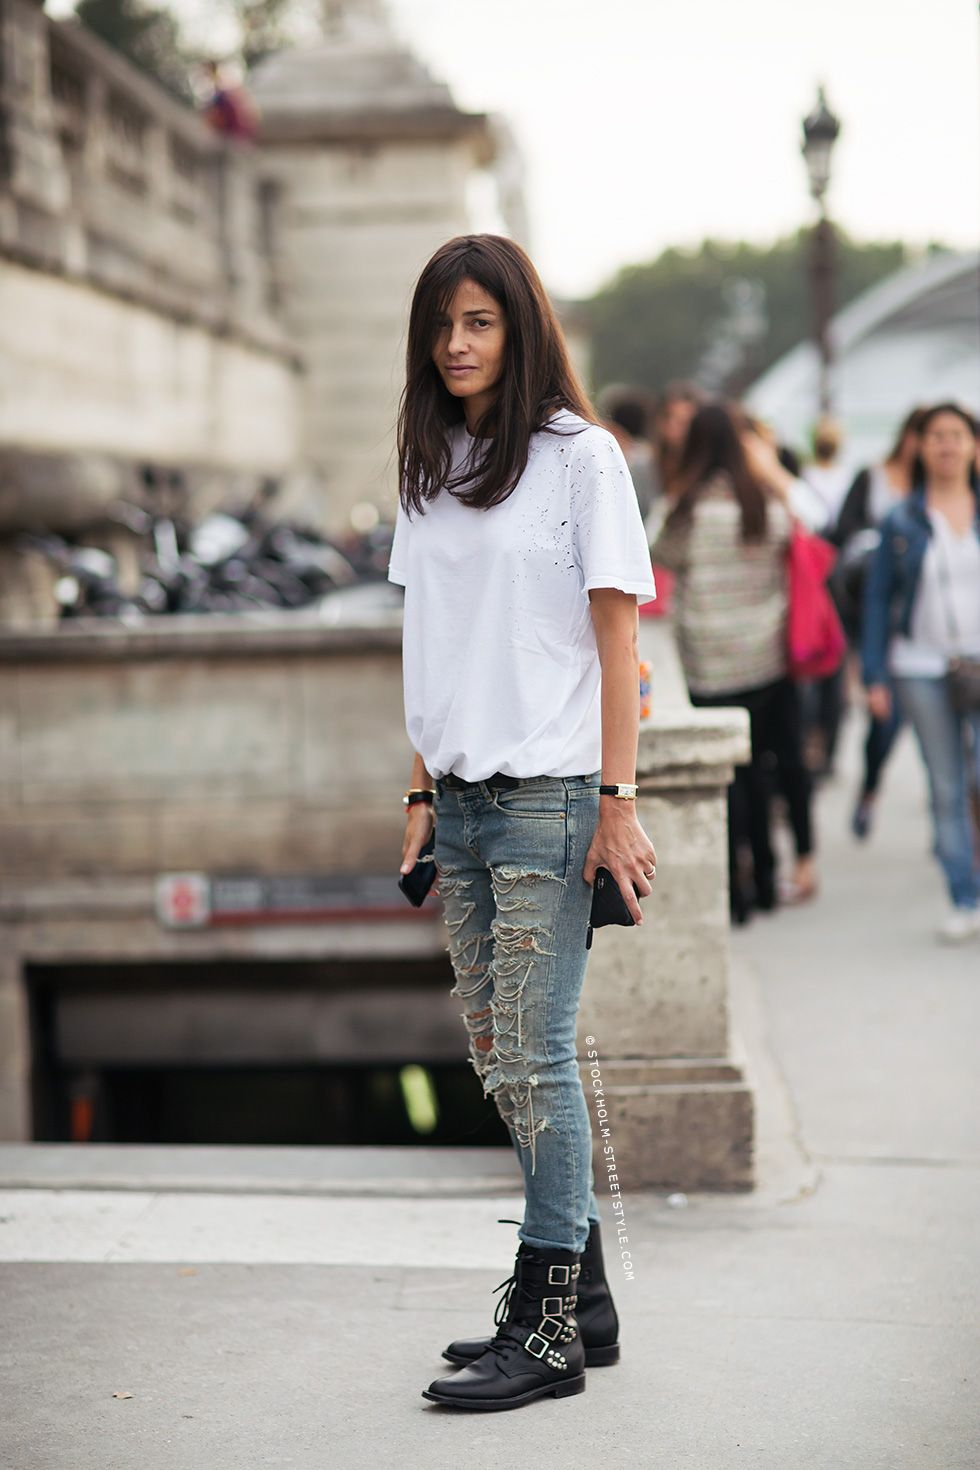 separation shoes f6a14 b9e6b Pin on Street Style